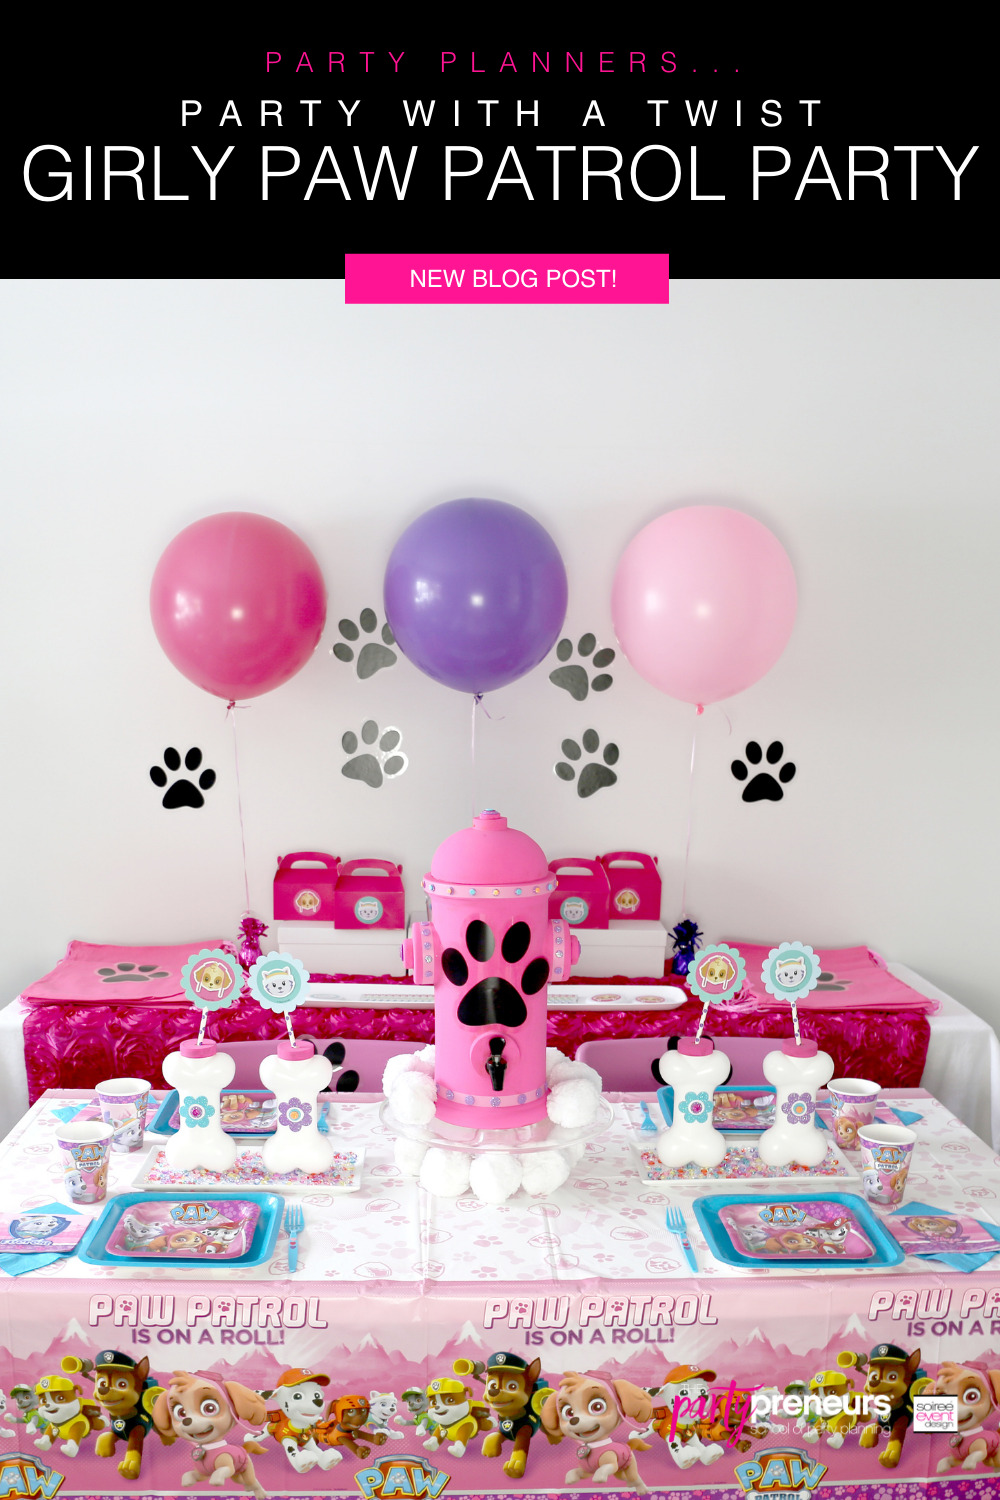 5 Ways to Have a Fun Girly Paw Patrol Party